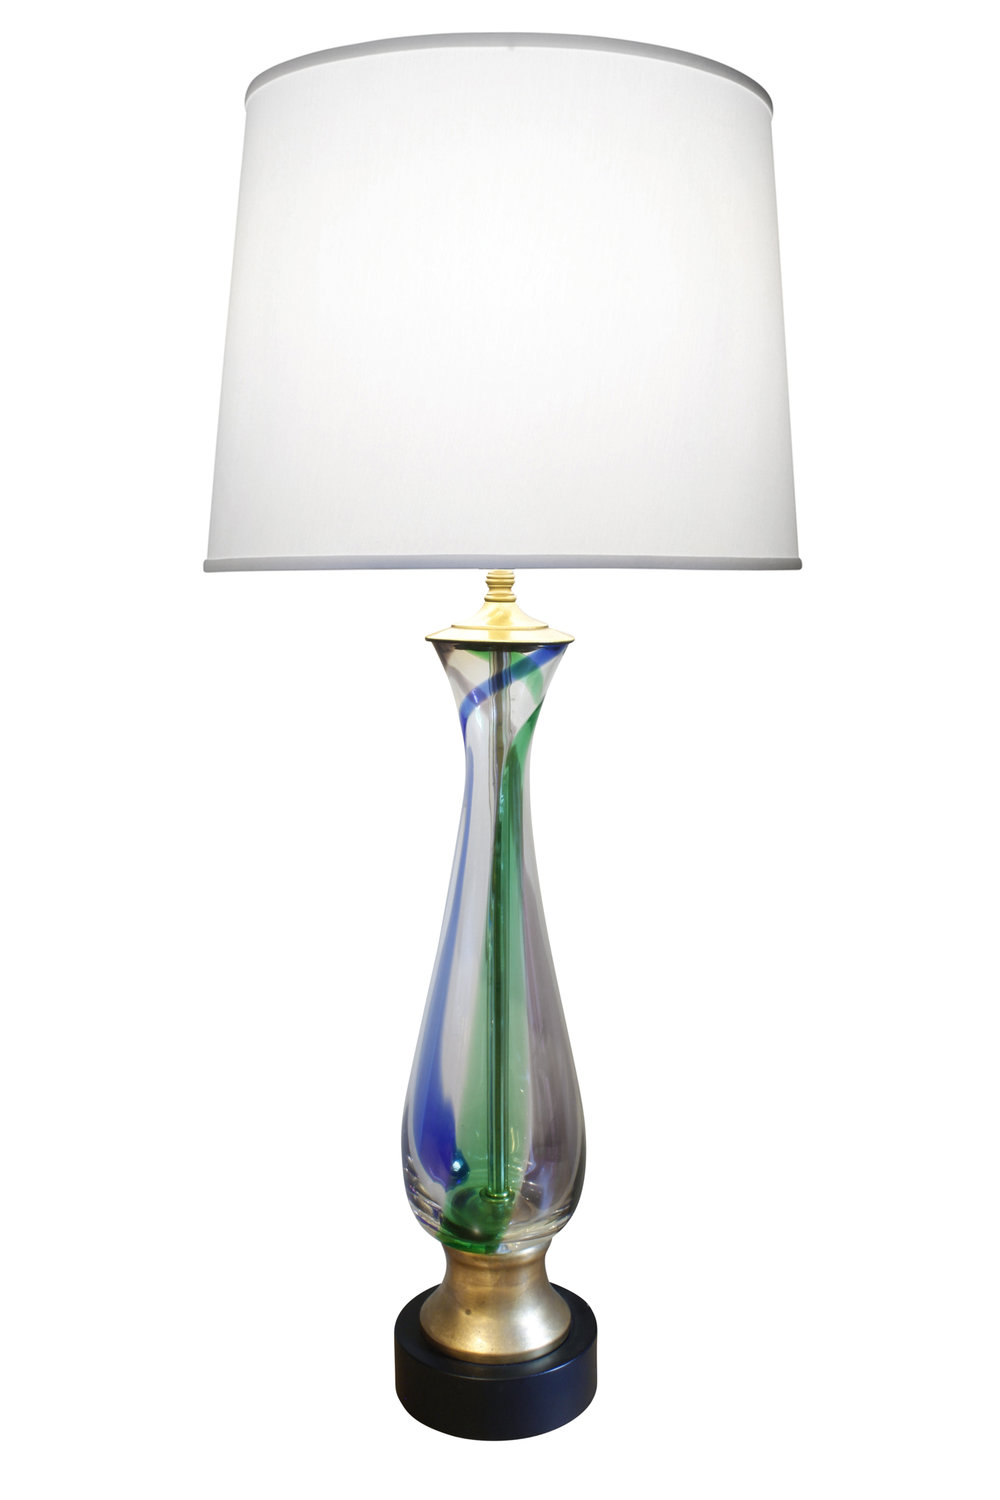 Murano pr red blue green clear table lamps pair main.JPG